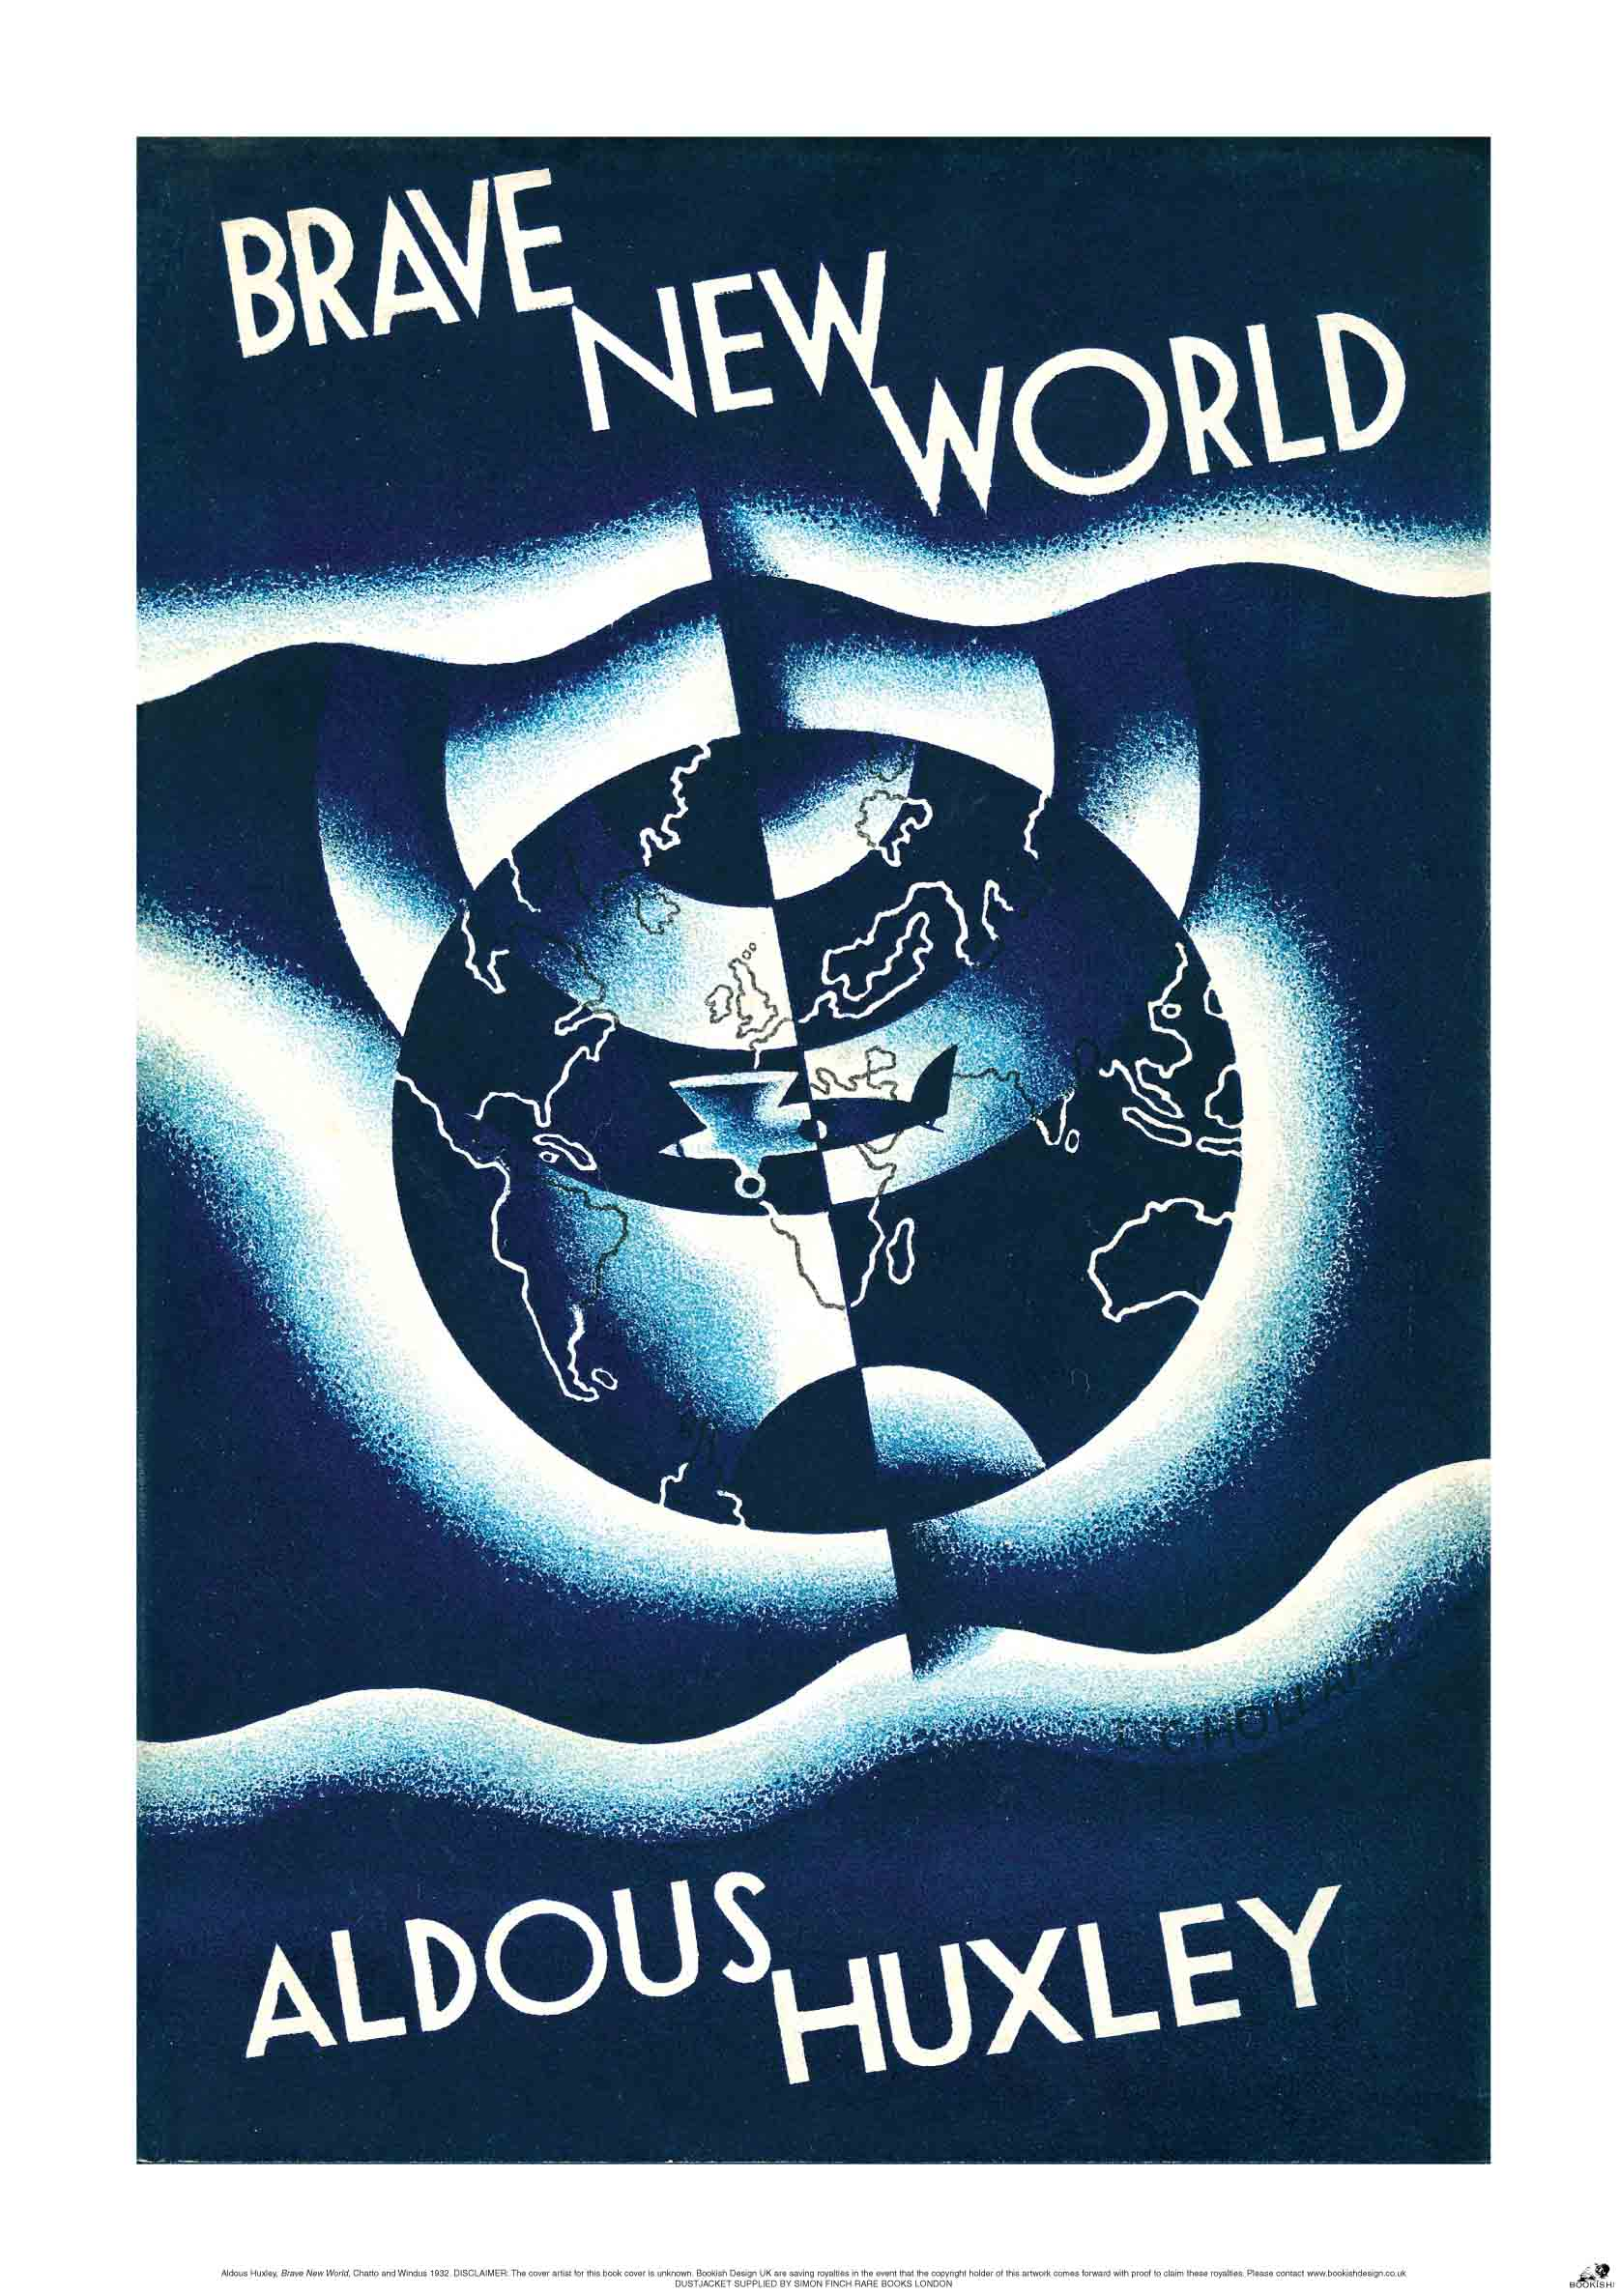 a comparison of brave new world and fahrenheit 451 in science fiction